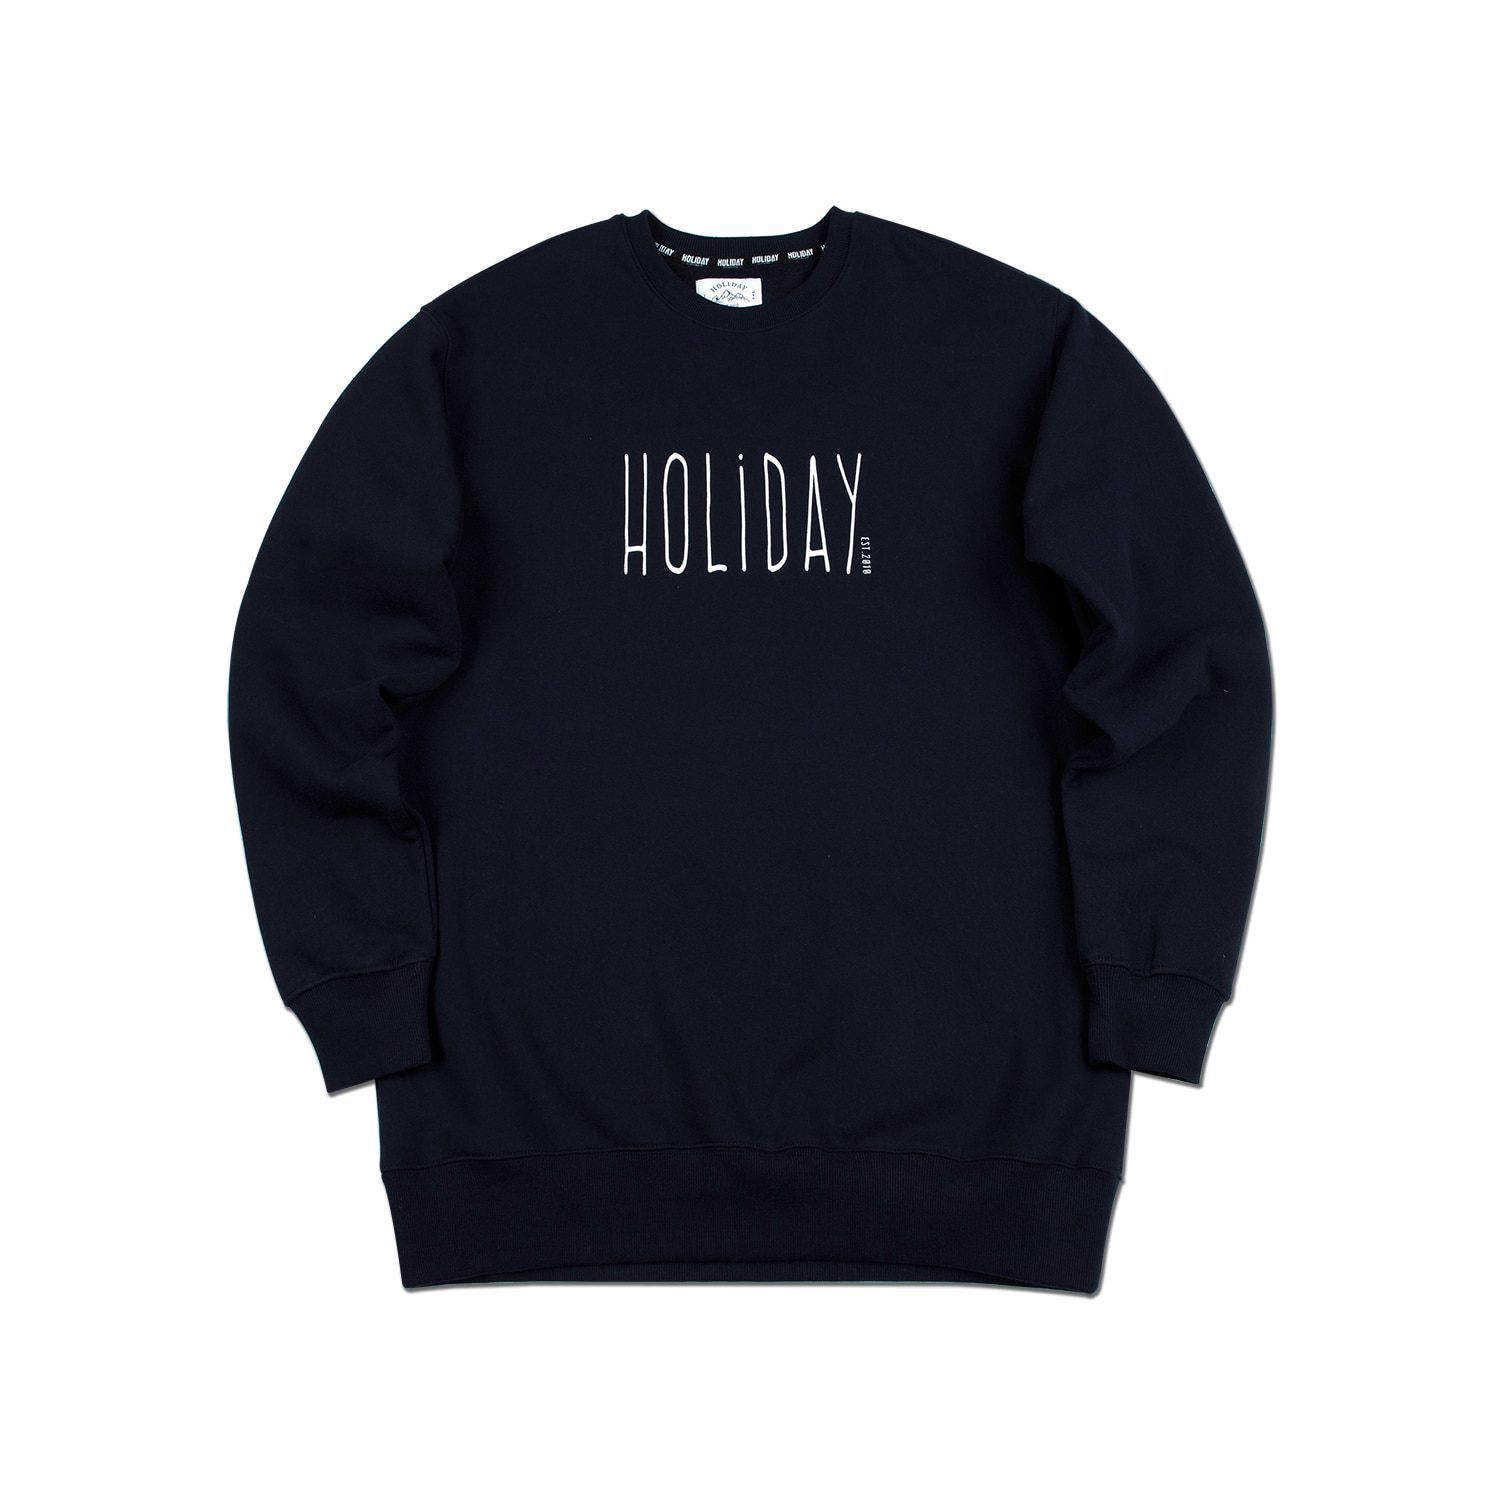 JOY crewneck - navy